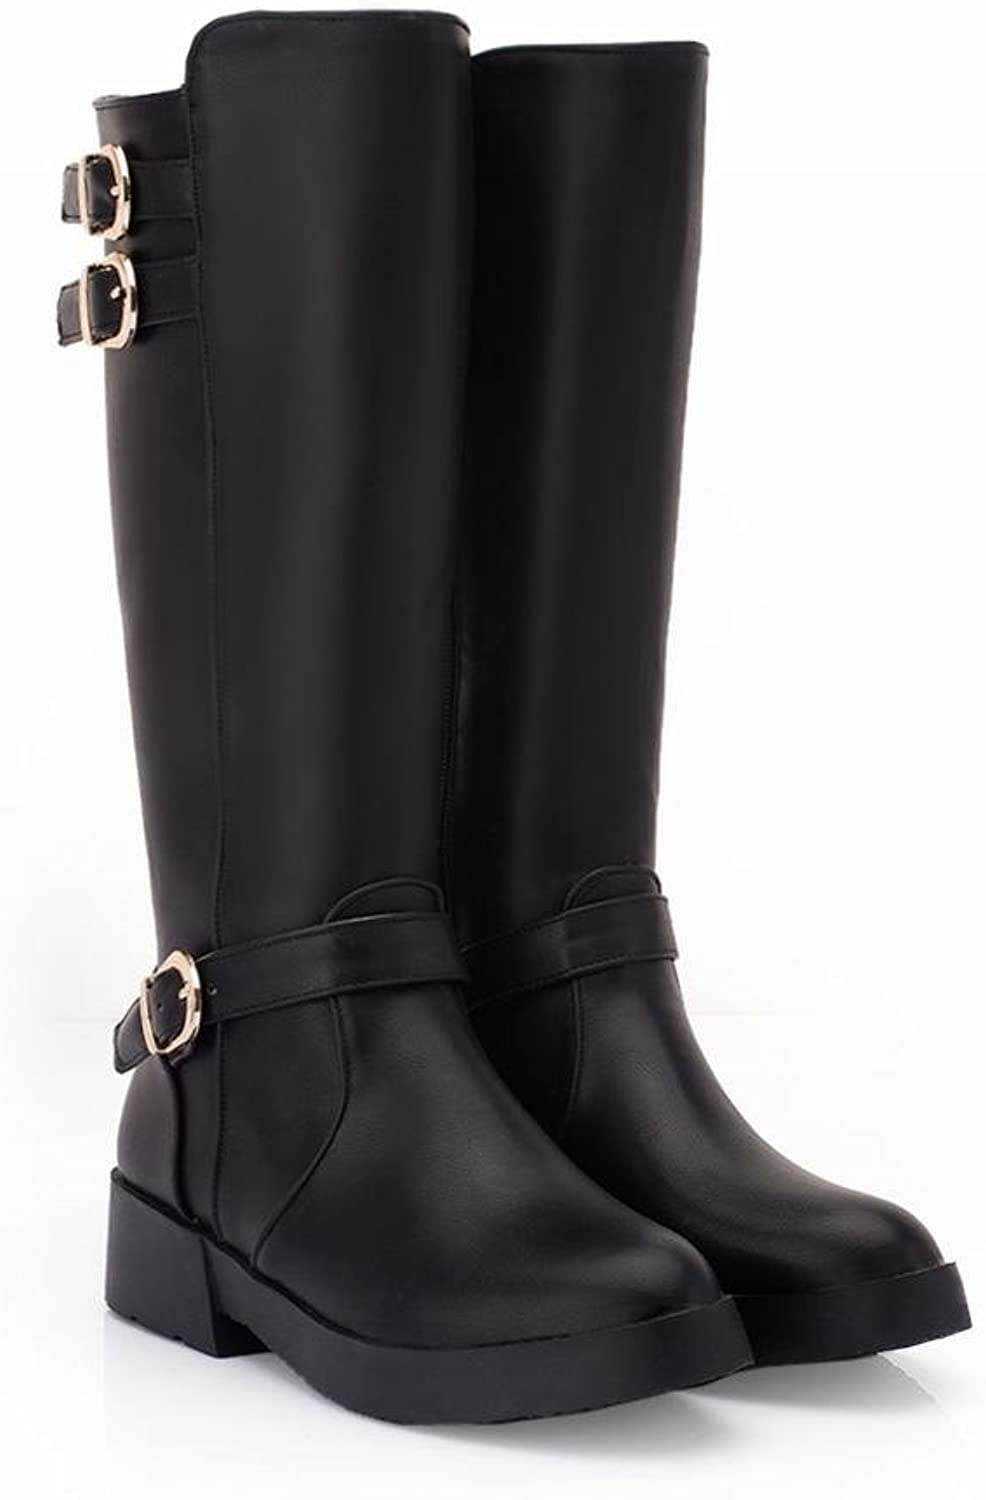 Show Shine Women's Knee High Tall Boots Black